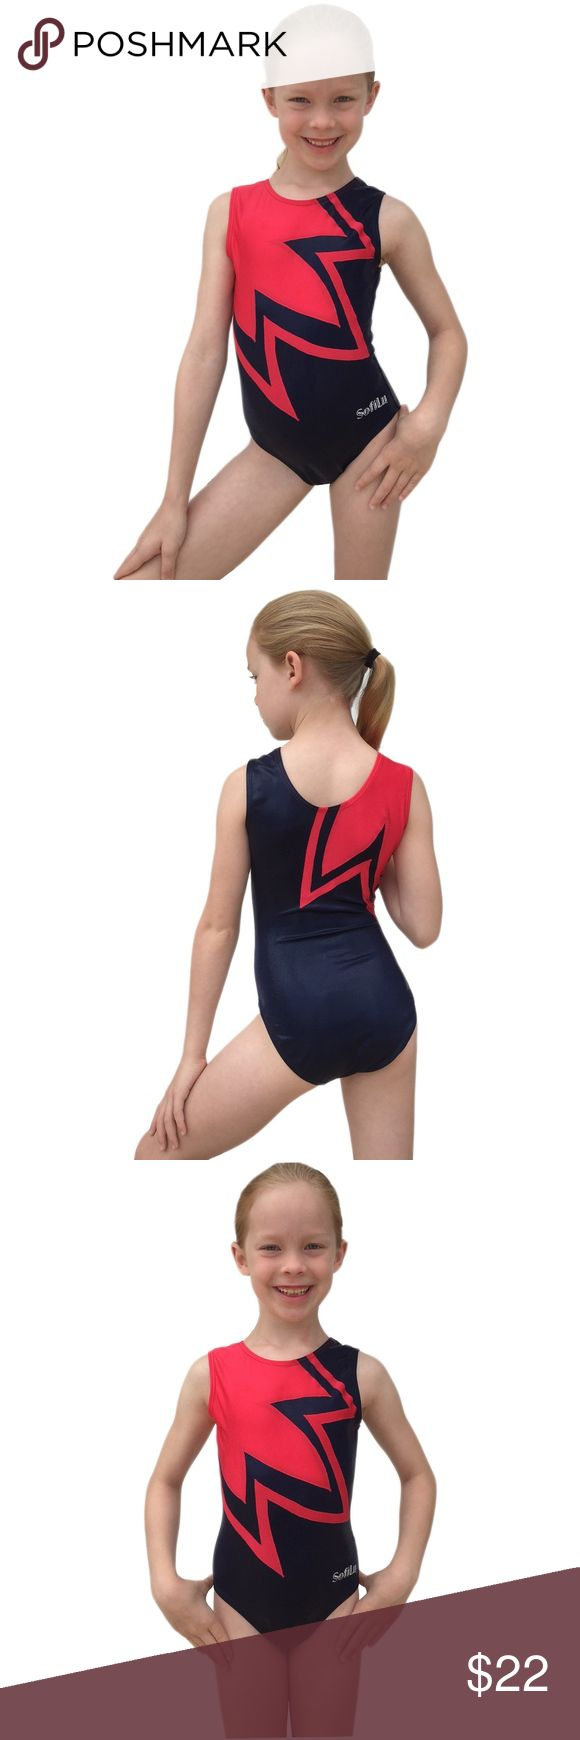 SofiLu™ Girl Gymnastics Leotard Navy Shimmery Mystic Fabric with Red Lycra   Premium Competition Quality 4-Way Smart Stretch Fabrics  Sizing: CXS (2-3 years), CSM (4-5 years), INT (6-7 years), CME (8-9 years)  Sizing tip: for the most accurate fit, determine child's girth measurement first  Machine Wash Cold on Delicate Cycle. Imported SofiLu™ Other